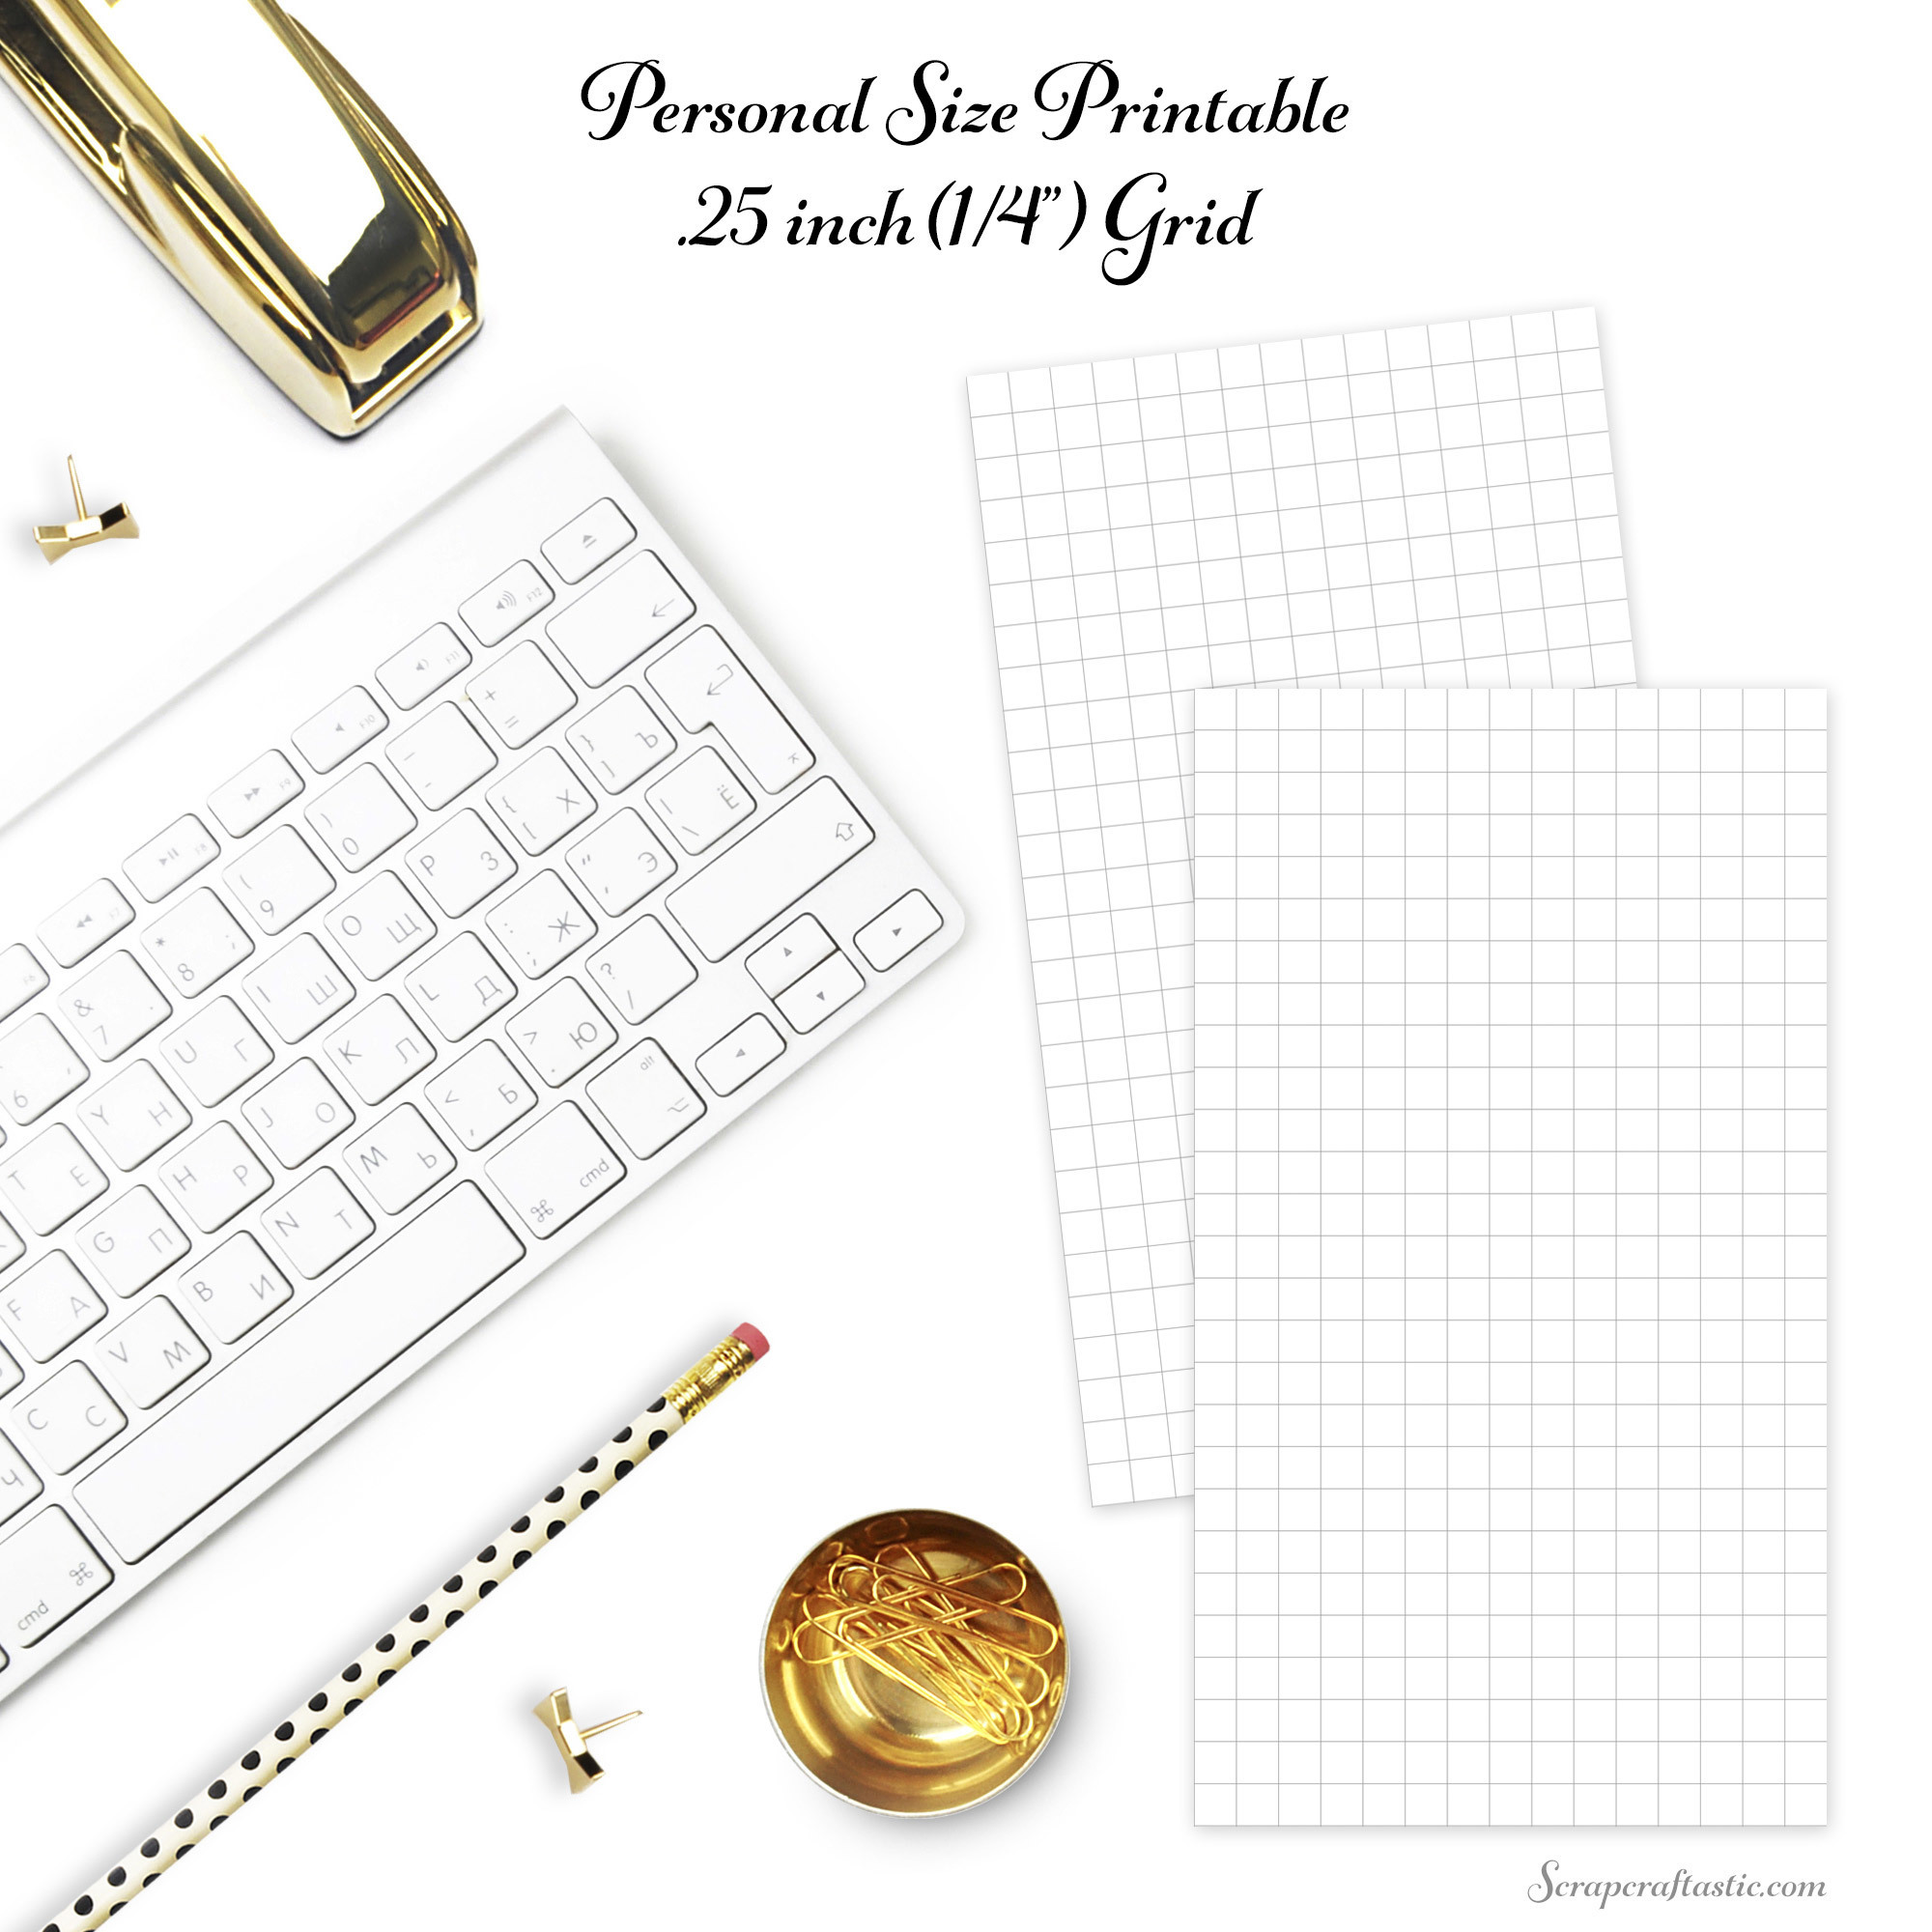 Free Quarter Inch Grid Personal Size Planner Printable Insert dbr_personal_grid25